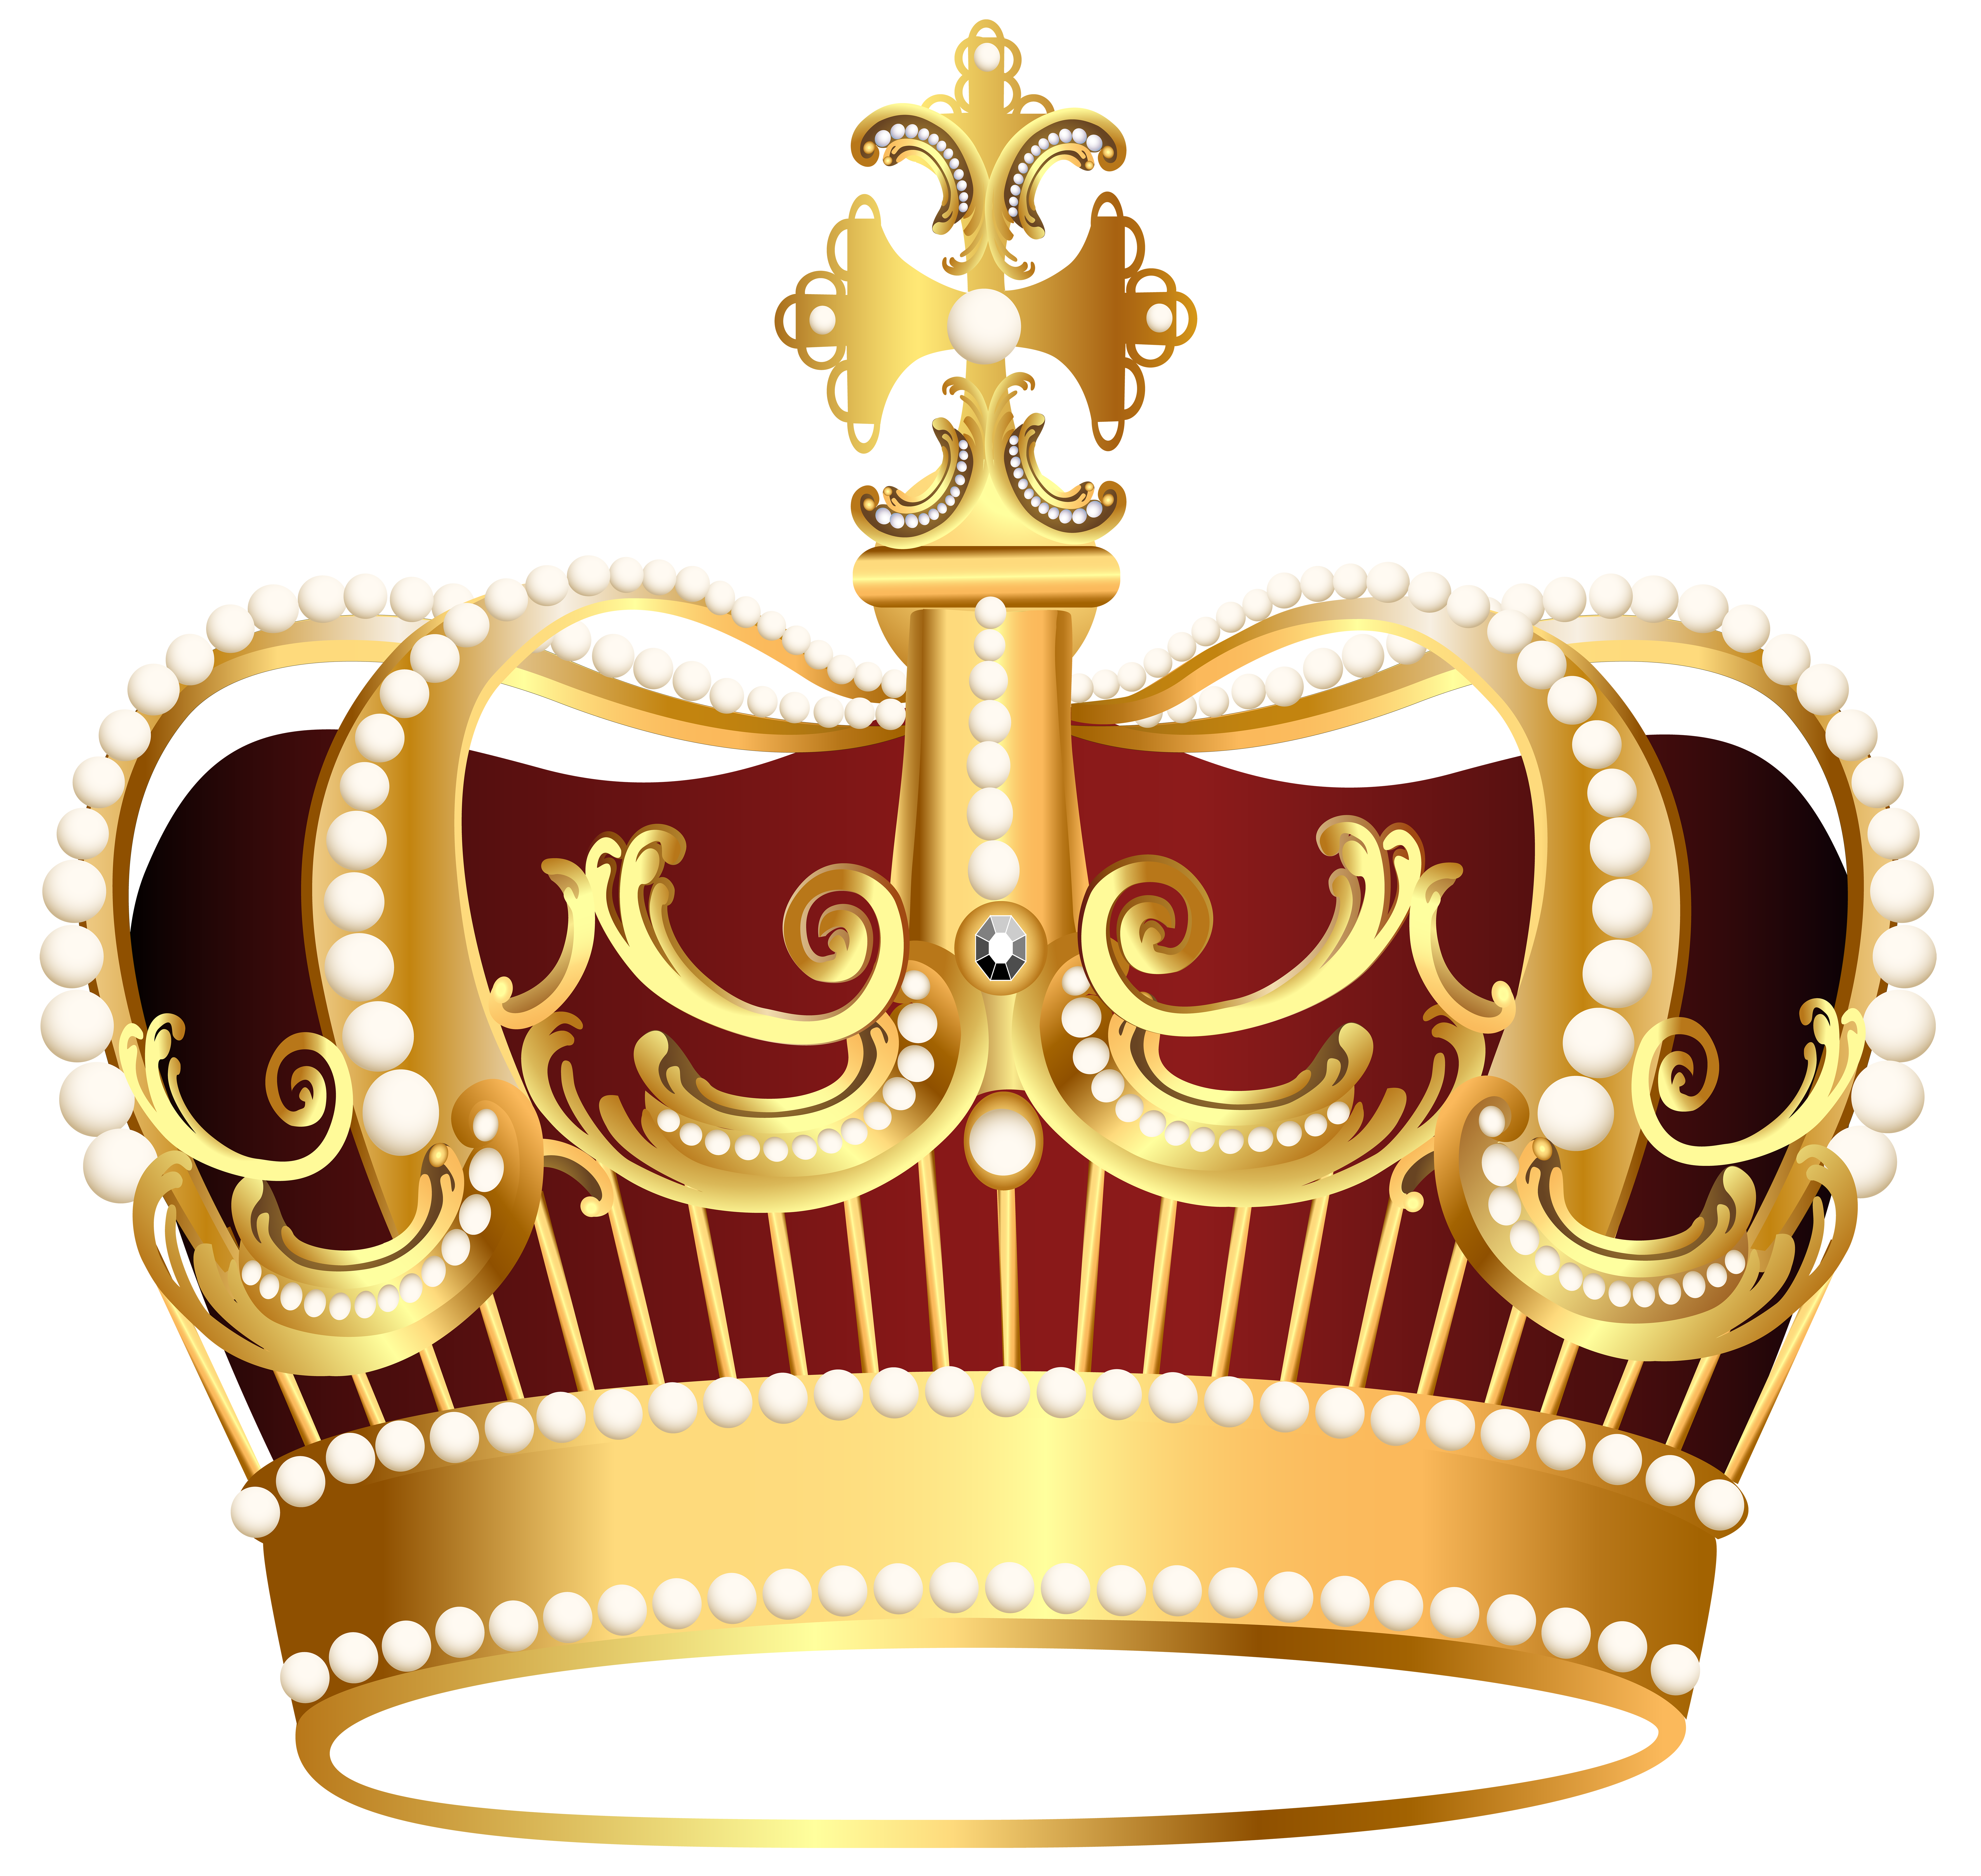 Golden and blue crown clipart vector free library Golden Crown Transparent PNG Clip Art Image | Gallery Yopriceville ... vector free library